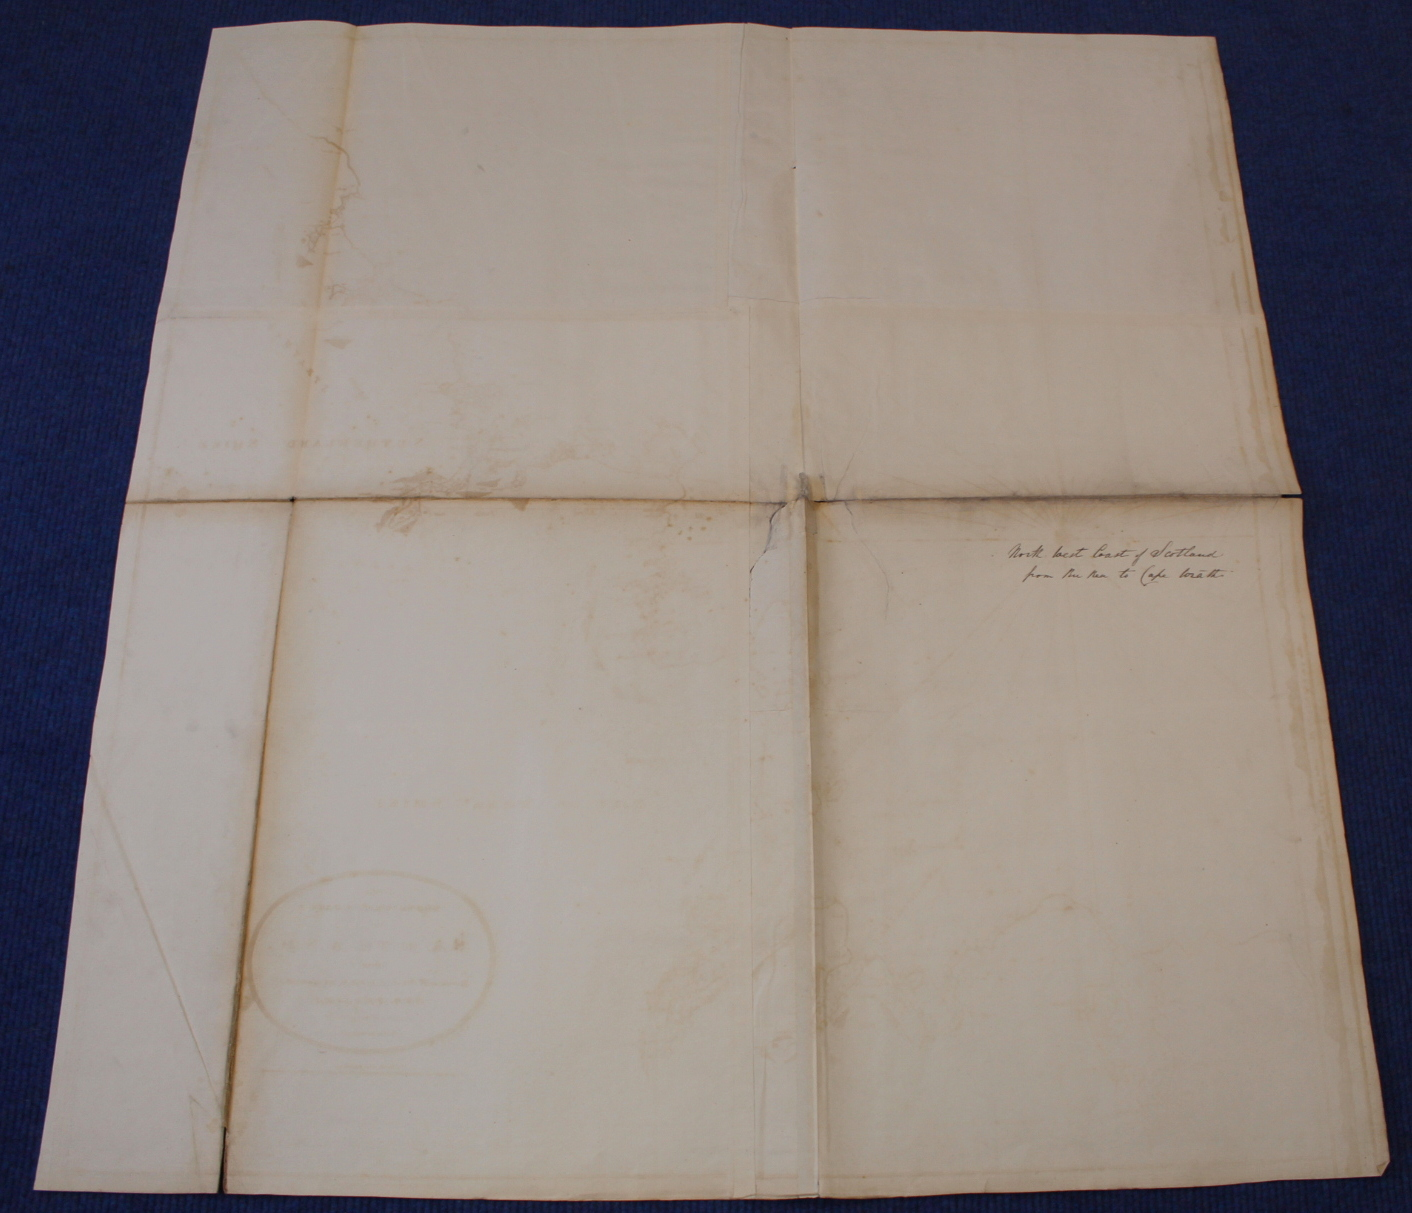 MACKENZIE MURDOCH (SNR.).A General Chart of the West Coast & Western Islands of Scotland from - Image 36 of 66